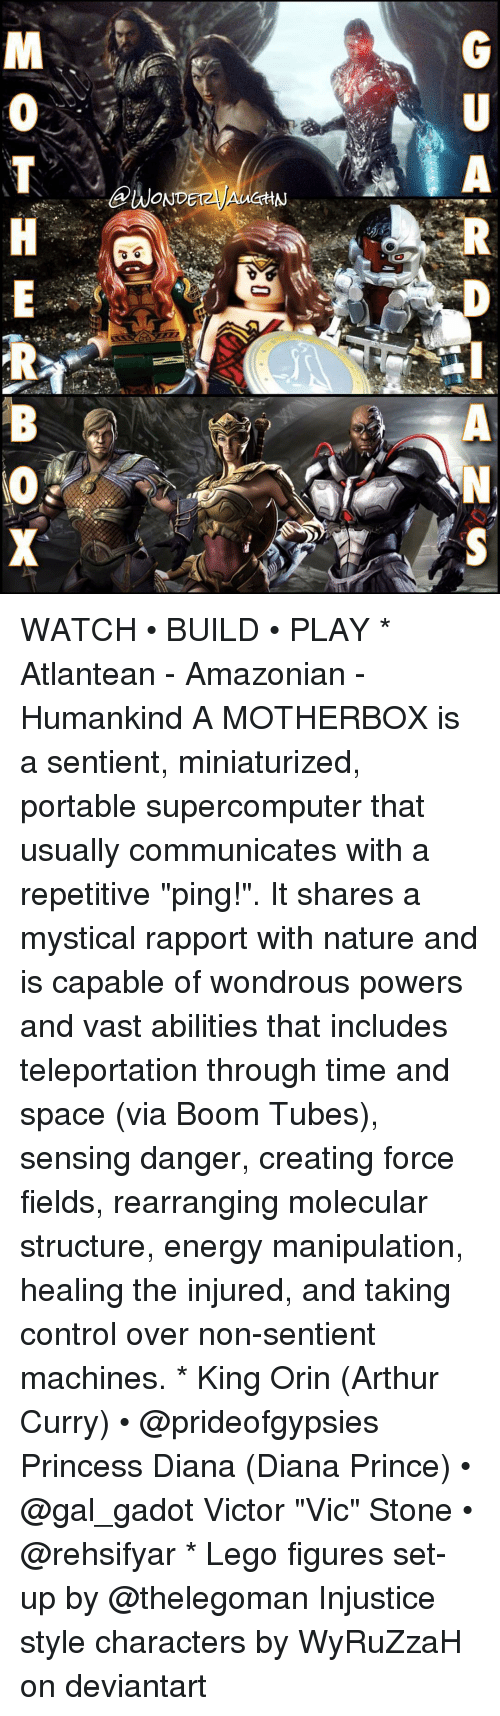 "figuratively: A  @WONDETzyAUCHN  GU  RP-ANS  MOTH E  RB (O X WATCH • BUILD • PLAY * Atlantean - Amazonian - Humankind A MOTHERBOX is a sentient, miniaturized, portable supercomputer that usually communicates with a repetitive ""ping!"". It shares a mystical rapport with nature and is capable of wondrous powers and vast abilities that includes teleportation through time and space (via Boom Tubes), sensing danger, creating force fields, rearranging molecular structure, energy manipulation, healing the injured, and taking control over non-sentient machines. * King Orin (Arthur Curry) • @prideofgypsies Princess Diana (Diana Prince) • @gal_gadot Victor ""Vic"" Stone • @rehsifyar * Lego figures set-up by @thelegoman Injustice style characters by WyRuZzaH on deviantart"